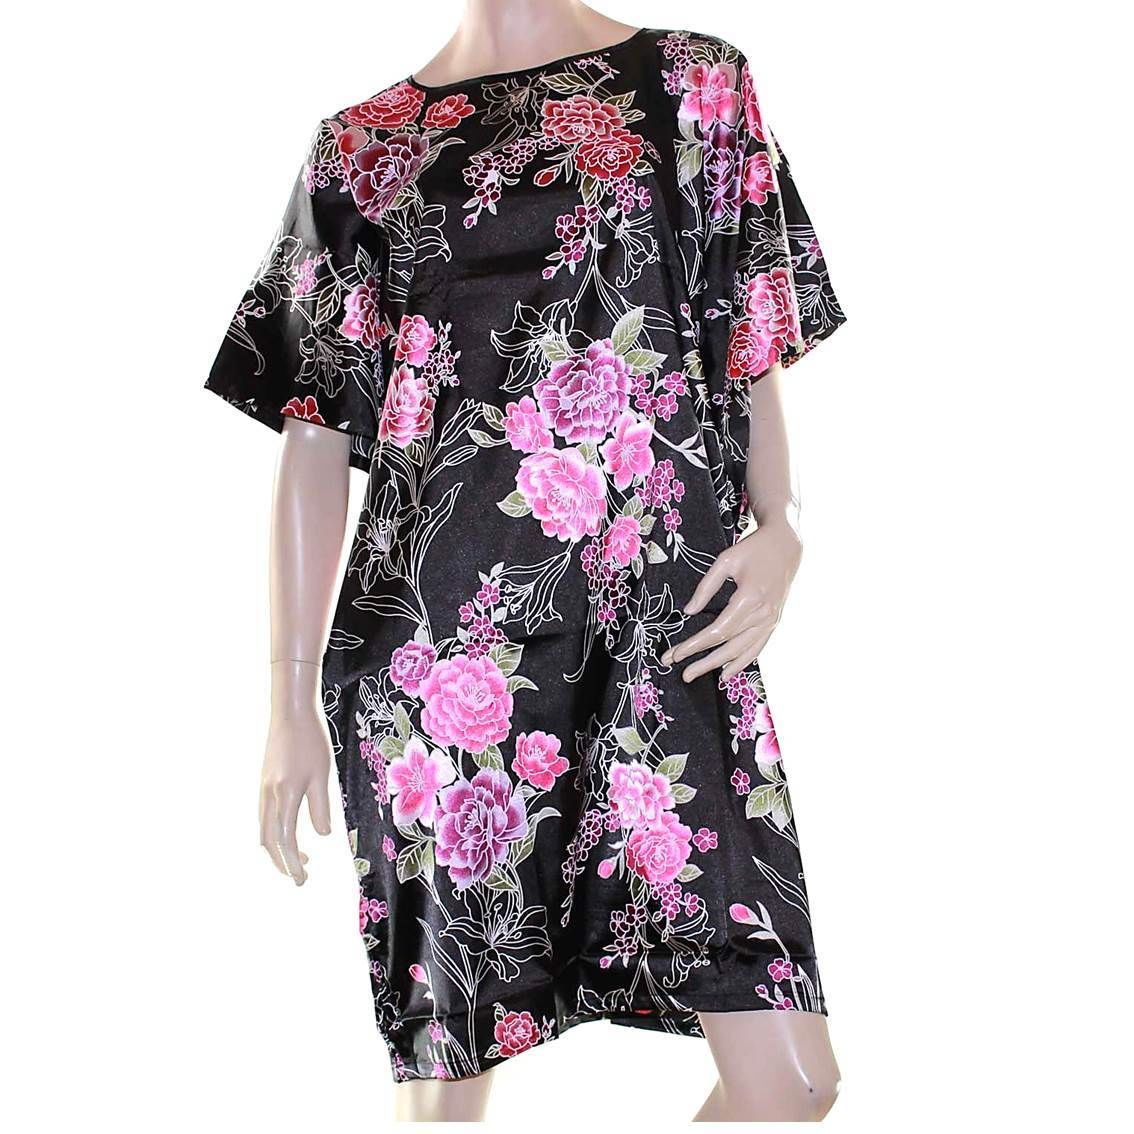 Find great deals on eBay for japanese kimono black pink. Shop with confidence.